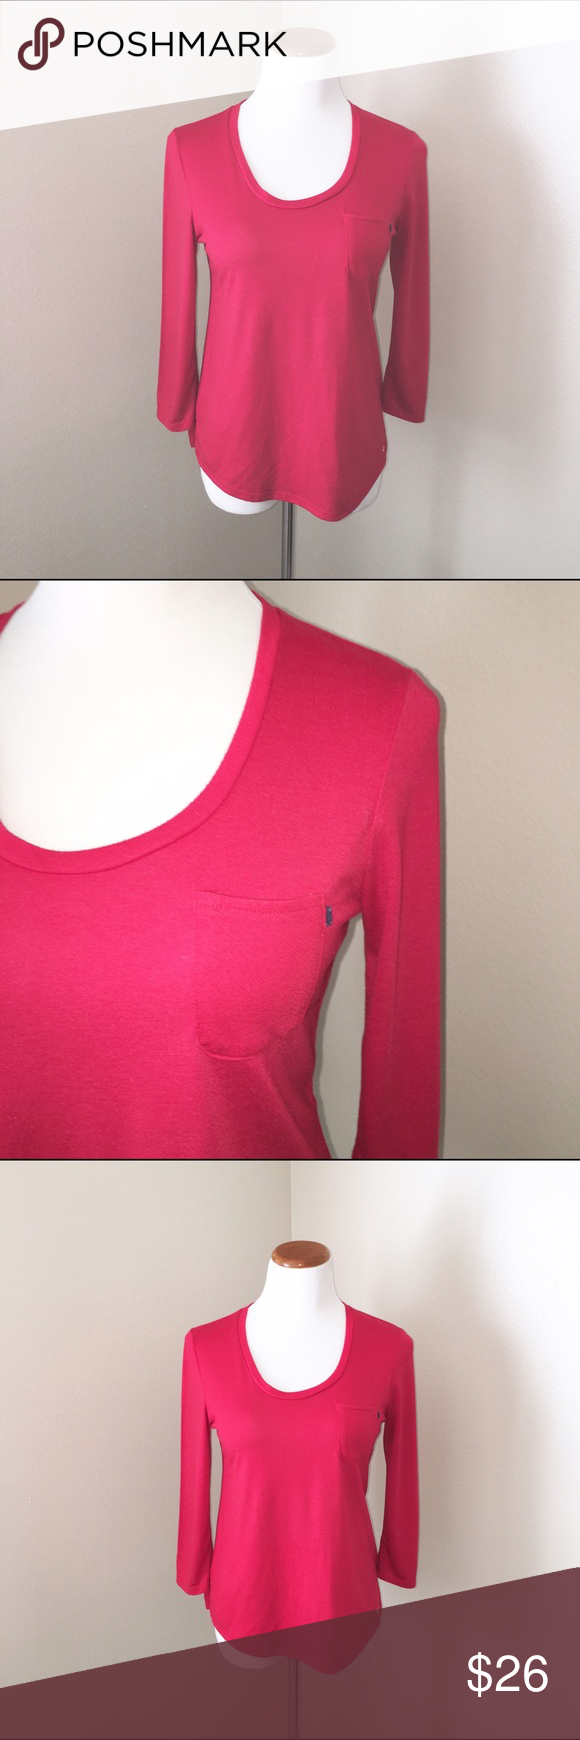 Tommy Hilfiger Top Tommy Hilfiger Top. Great for weekend wear. Pocket on one side. Beautiful red color. Size SP Tommy Hilfiger Tops